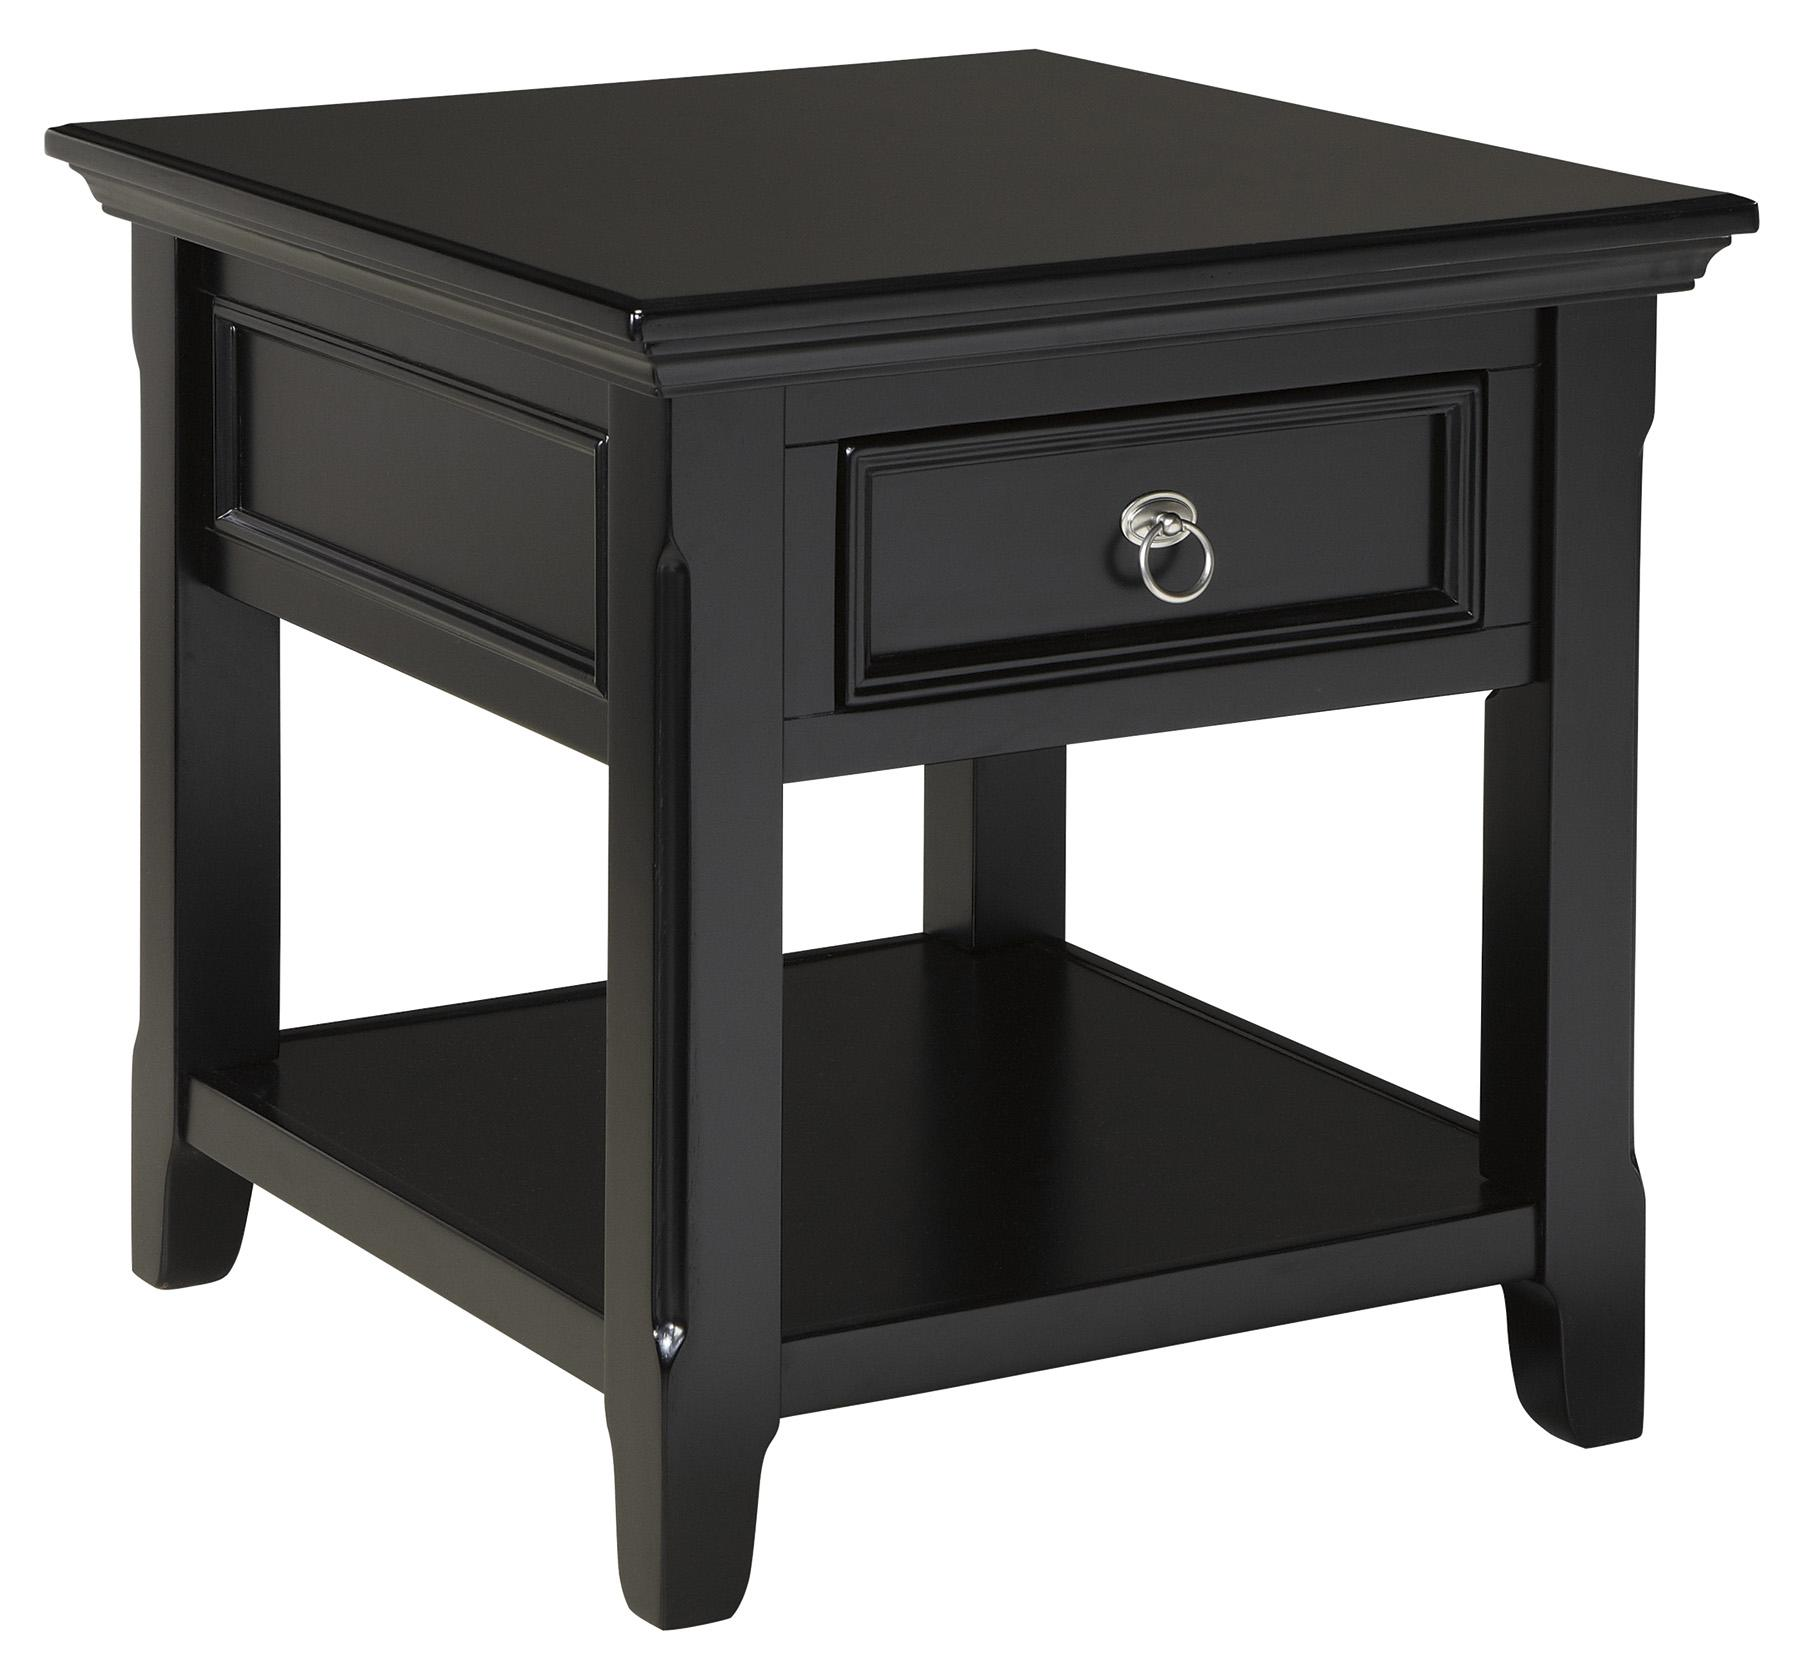 Signature Design by Ashley Greensburg Rectangular End Table - Item Number: T811-3